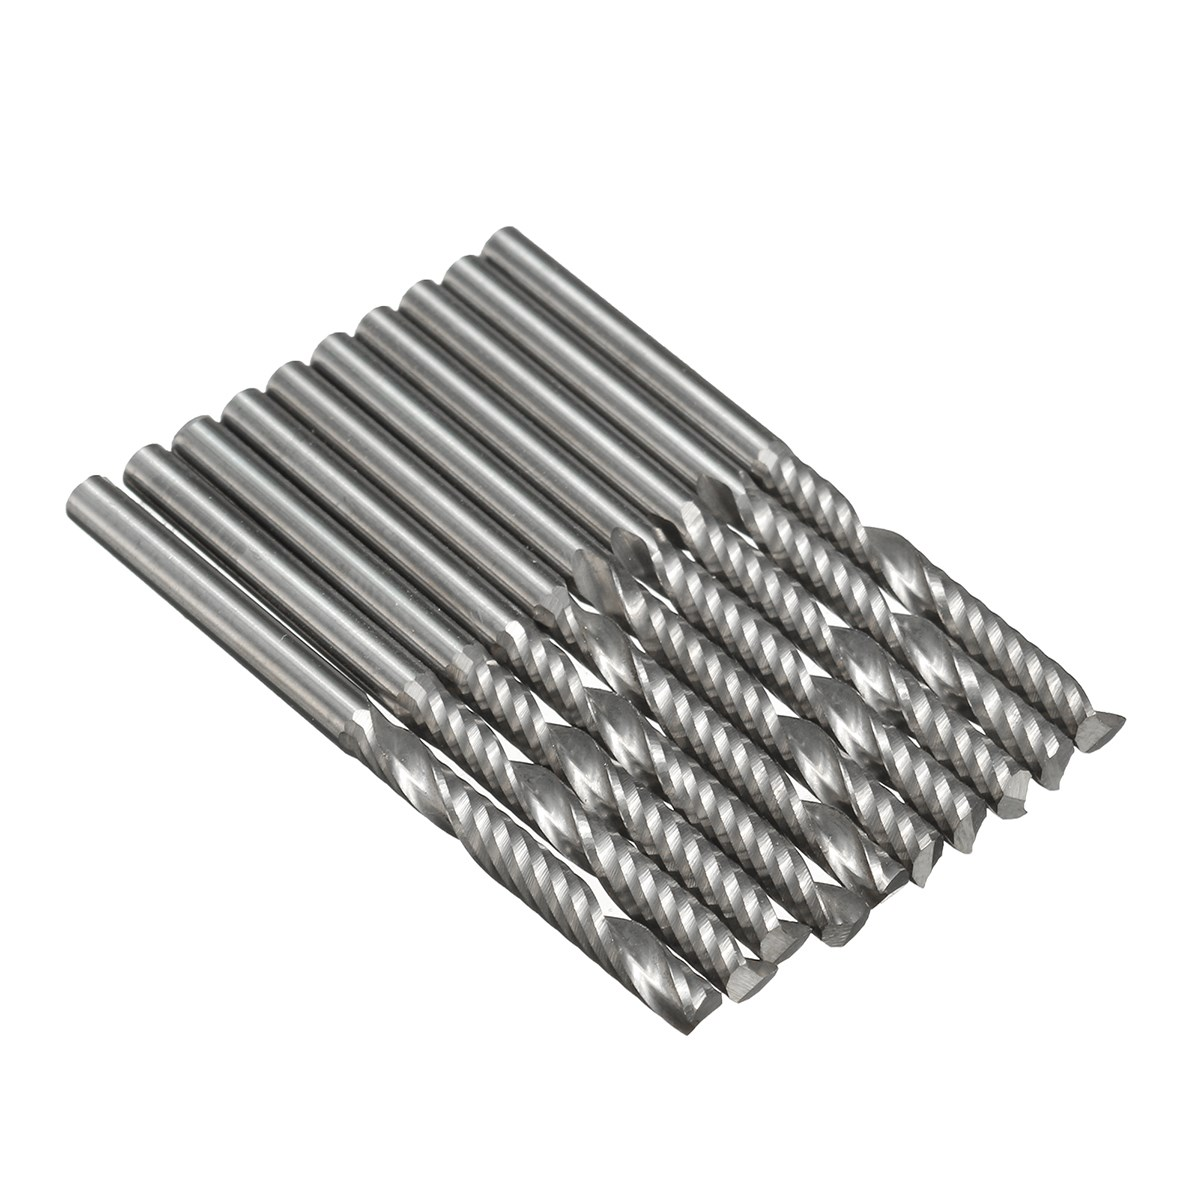 10pcs/Box 1/8 Inch 3.175x25mm Shank 1 Flute Carbide Spiral End Mill CNC Router Bit Tool For Acrylic PVC Wood And Other Materials 3 175 12 0 5 40l one flute spiral taper cutter cnc engraving tools one flute spiral bit taper bits